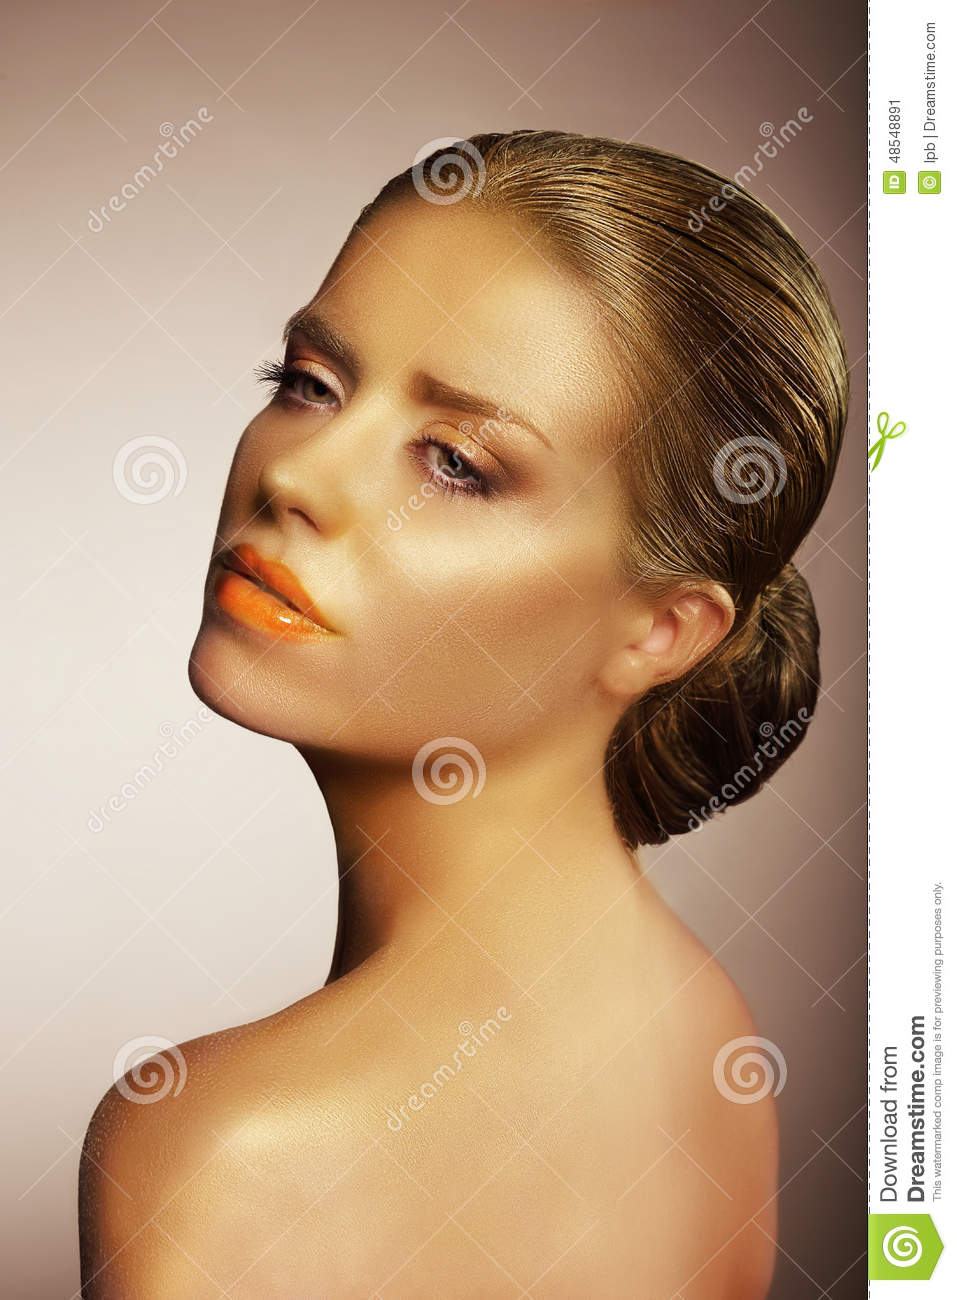 Portrait Of Gorgeous Female Painted Gold Stock Photo - Image: 48548891